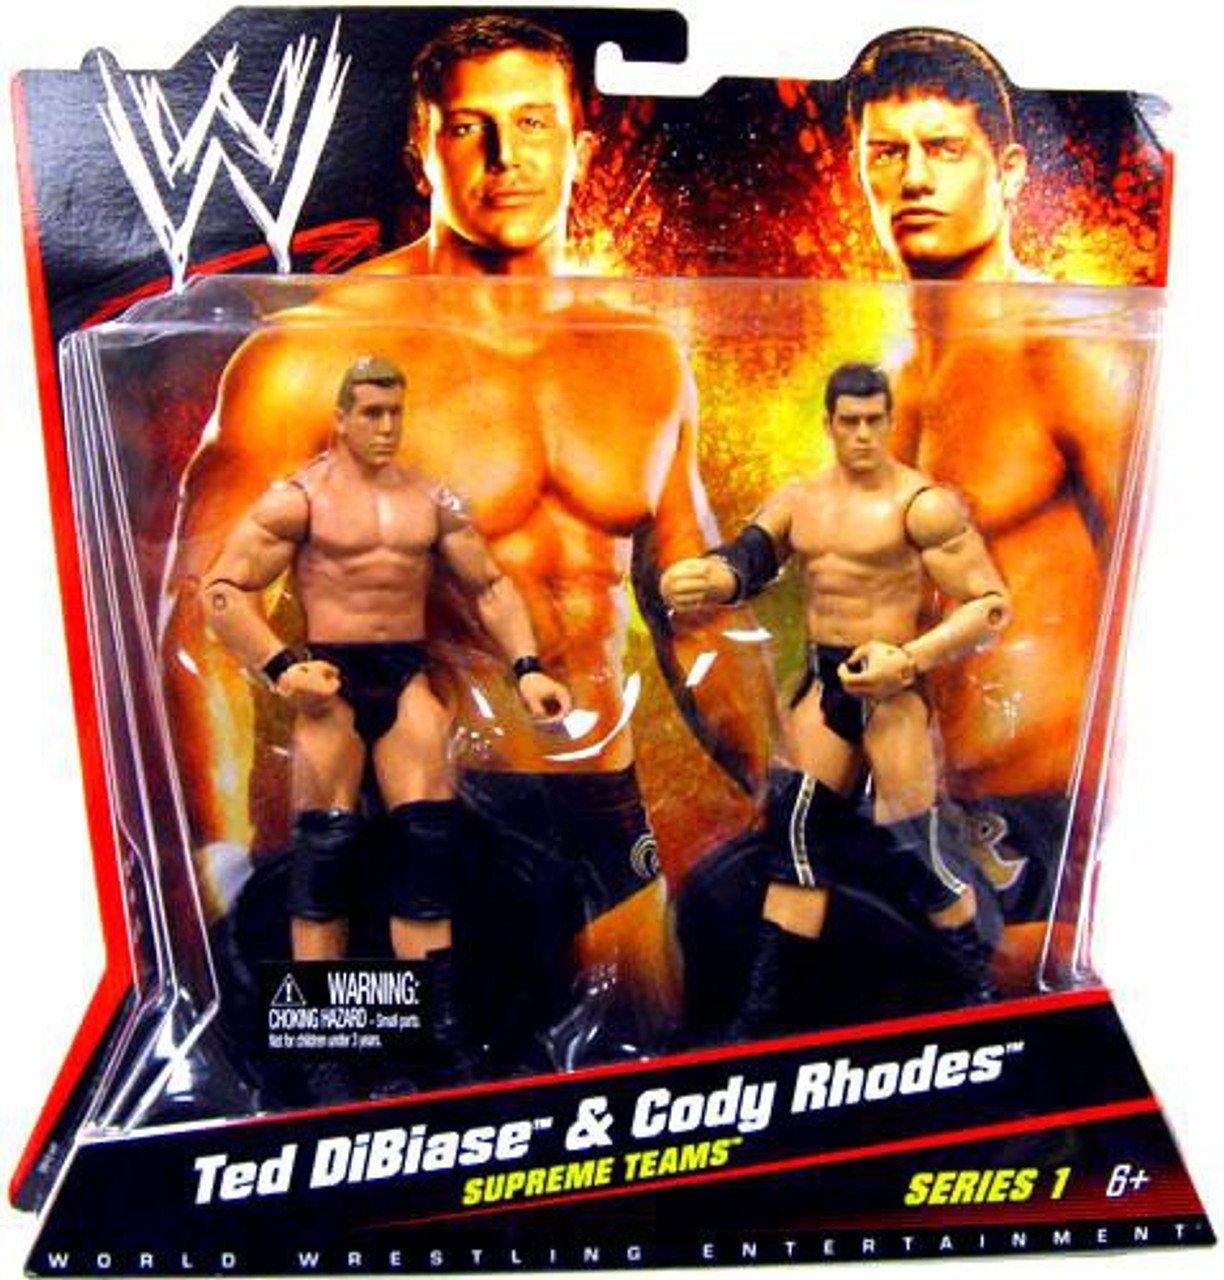 WWE Wrestling Ted DiBiase & Cody Rhodes Action Figure 2-Pack